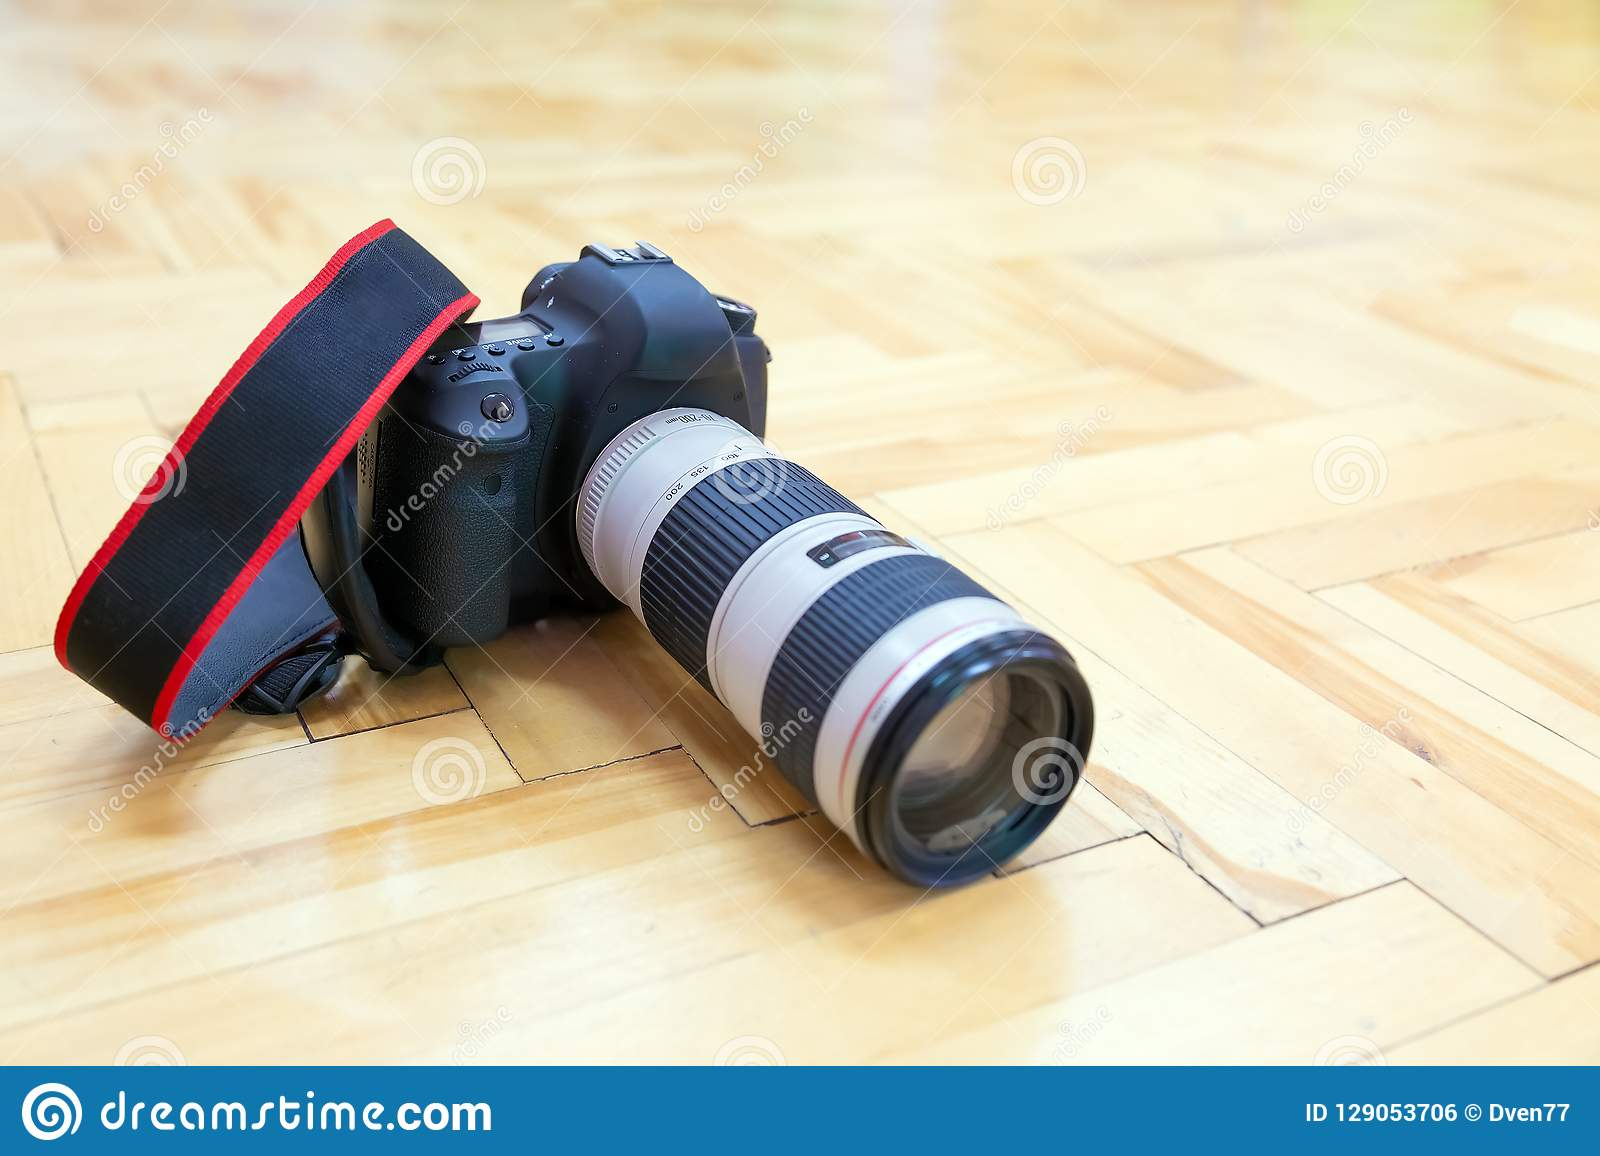 DSLR Camera With Telephoto Lens Is On The Parquet Floor